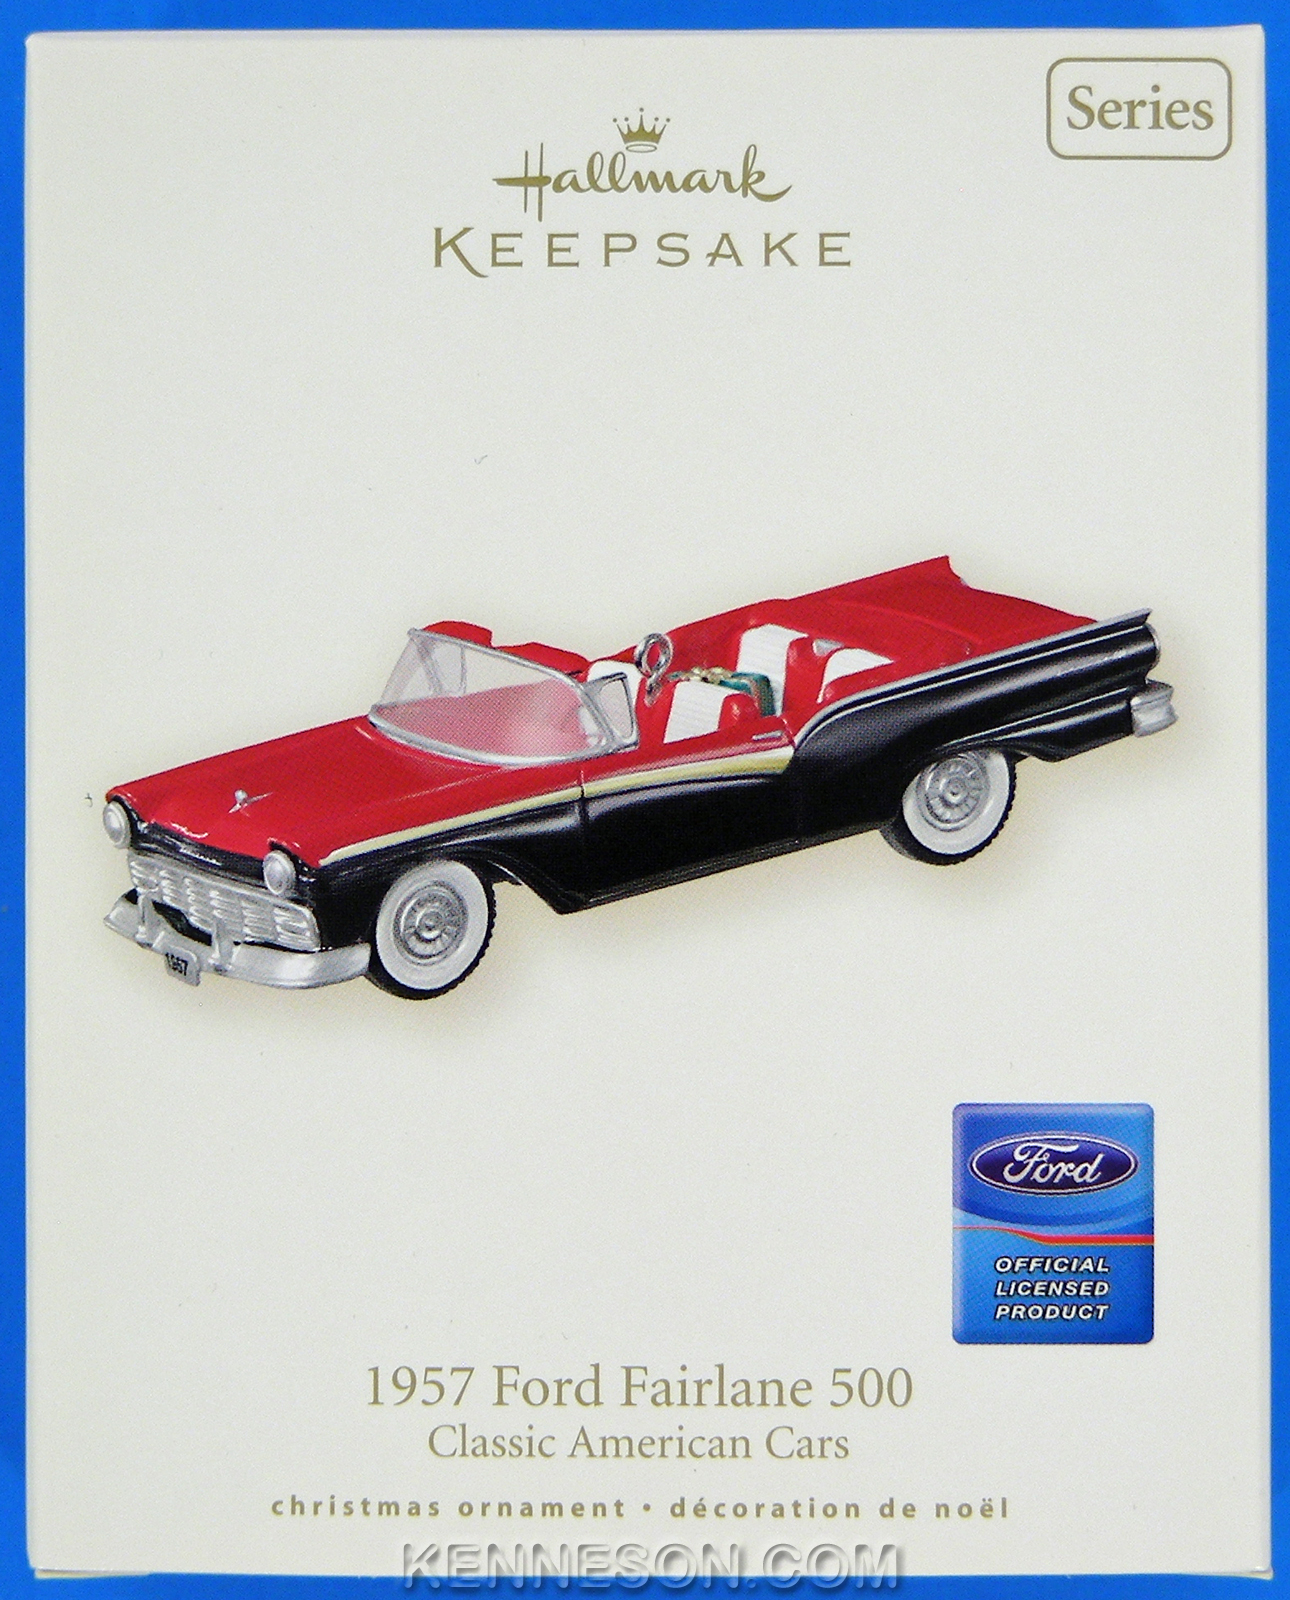 1957 Ford Fairlane 500 Classic American Cars Series 17